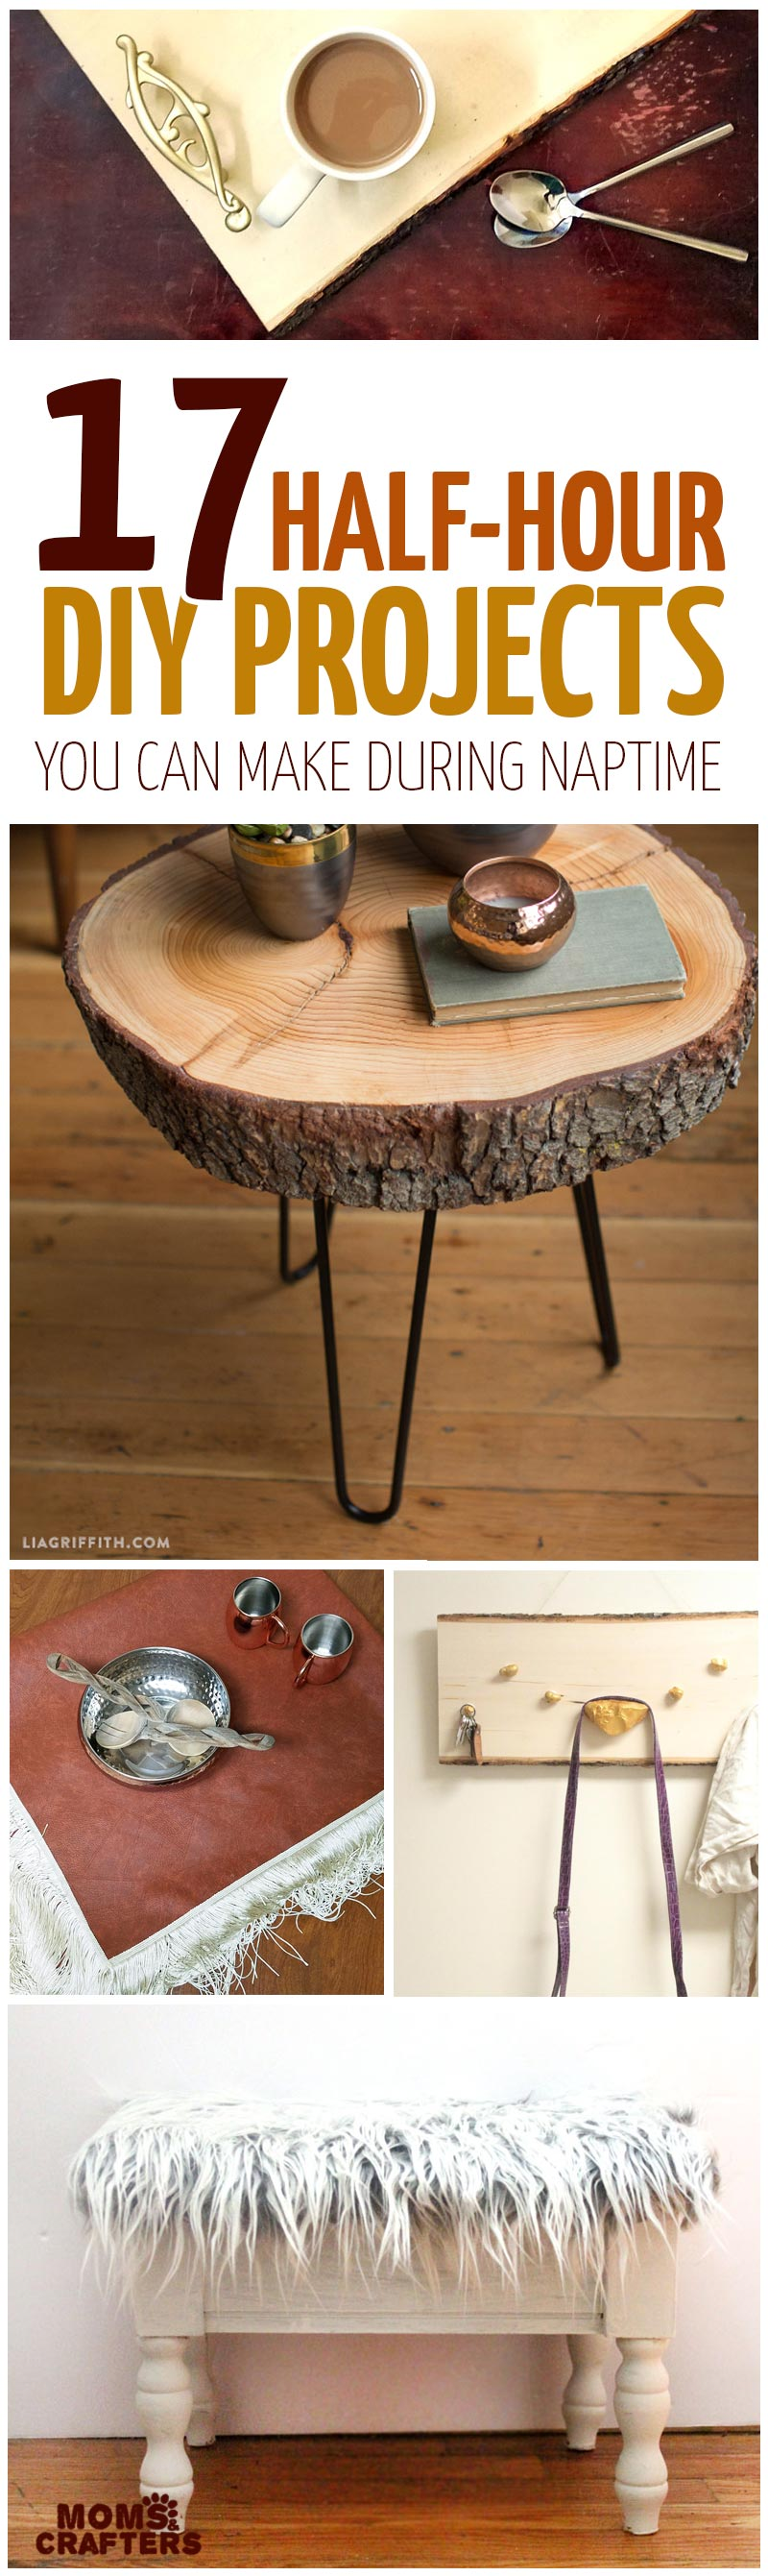 17 Beautiful, simple DIY projects that can be done during naptime - these DIY home projects are easy for beginners and perfect for busy moms who like to create. They include DIY furniture, makeovers, home decor, and organizers. You'll love these home crafts!